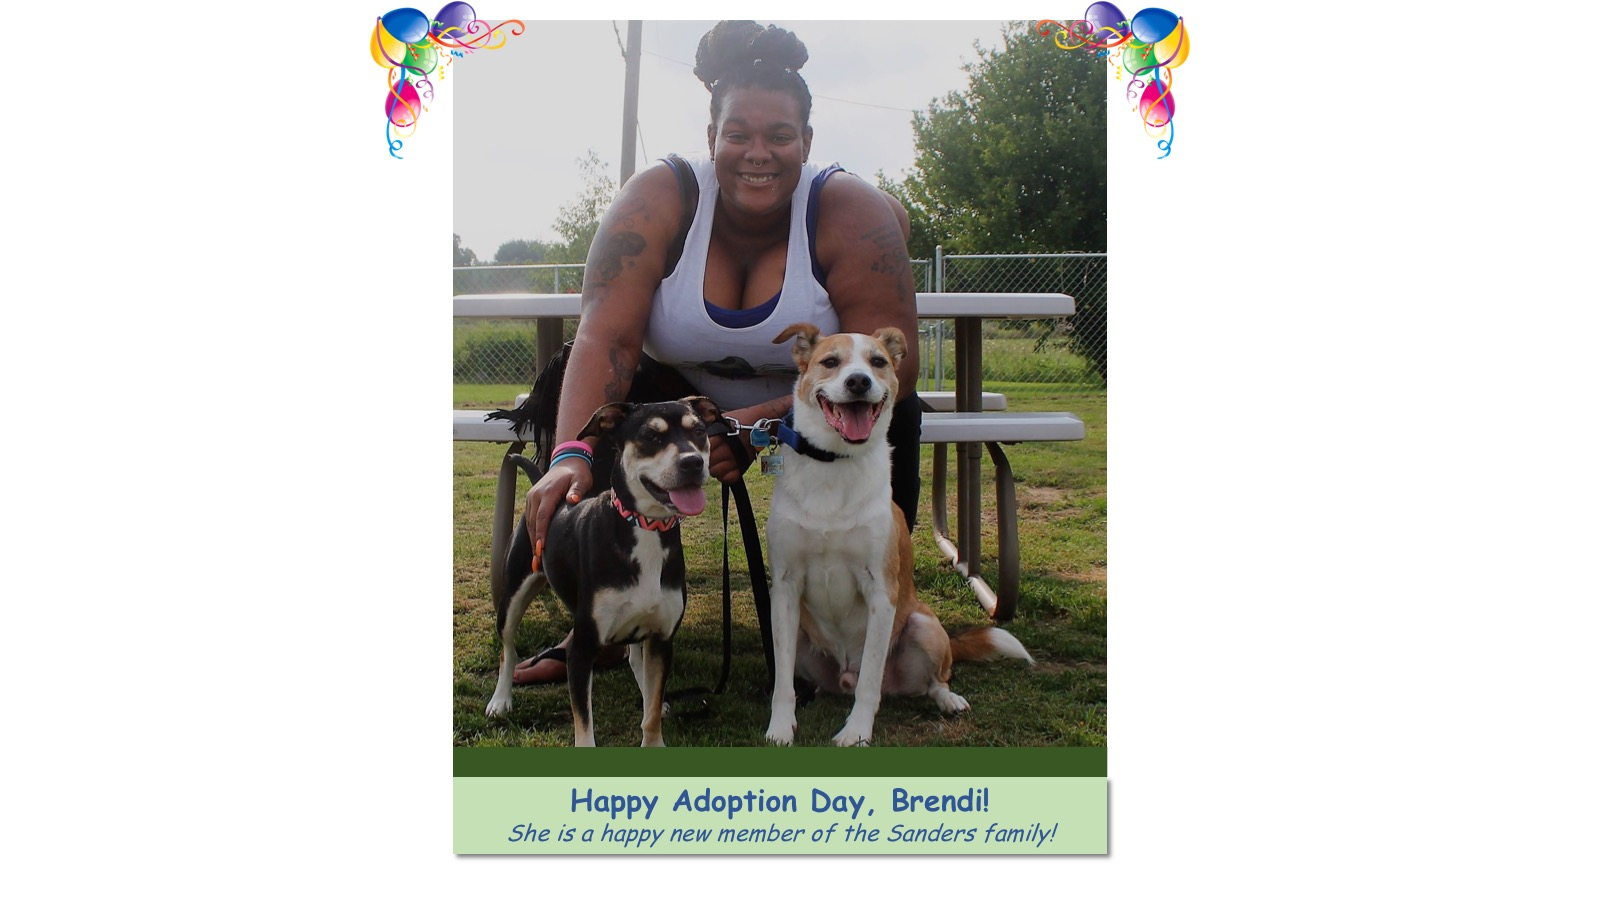 Brendi_Adoption_Photo_2018.jpg